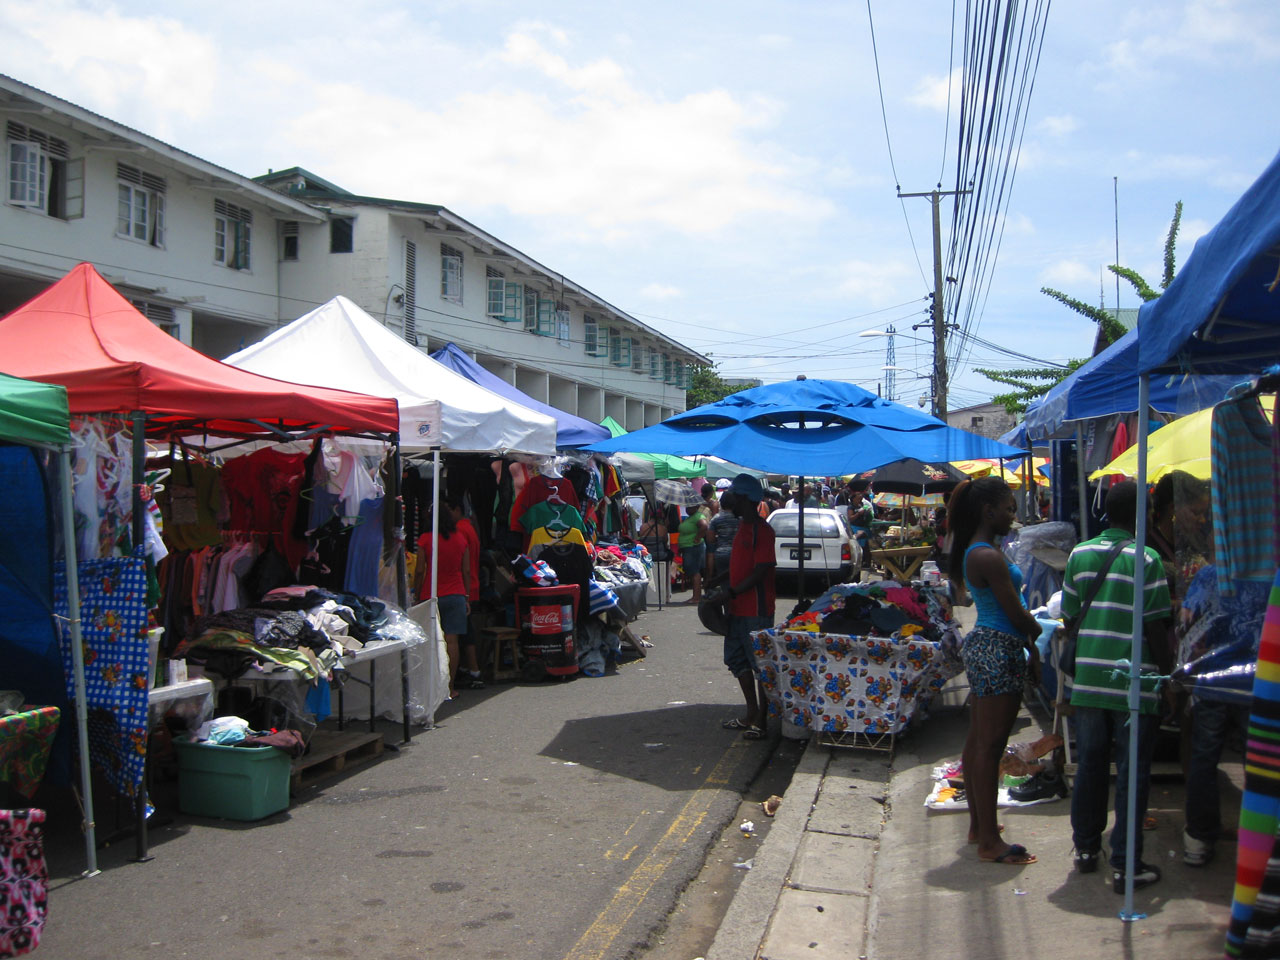 Market in Castries, Saint Lucia